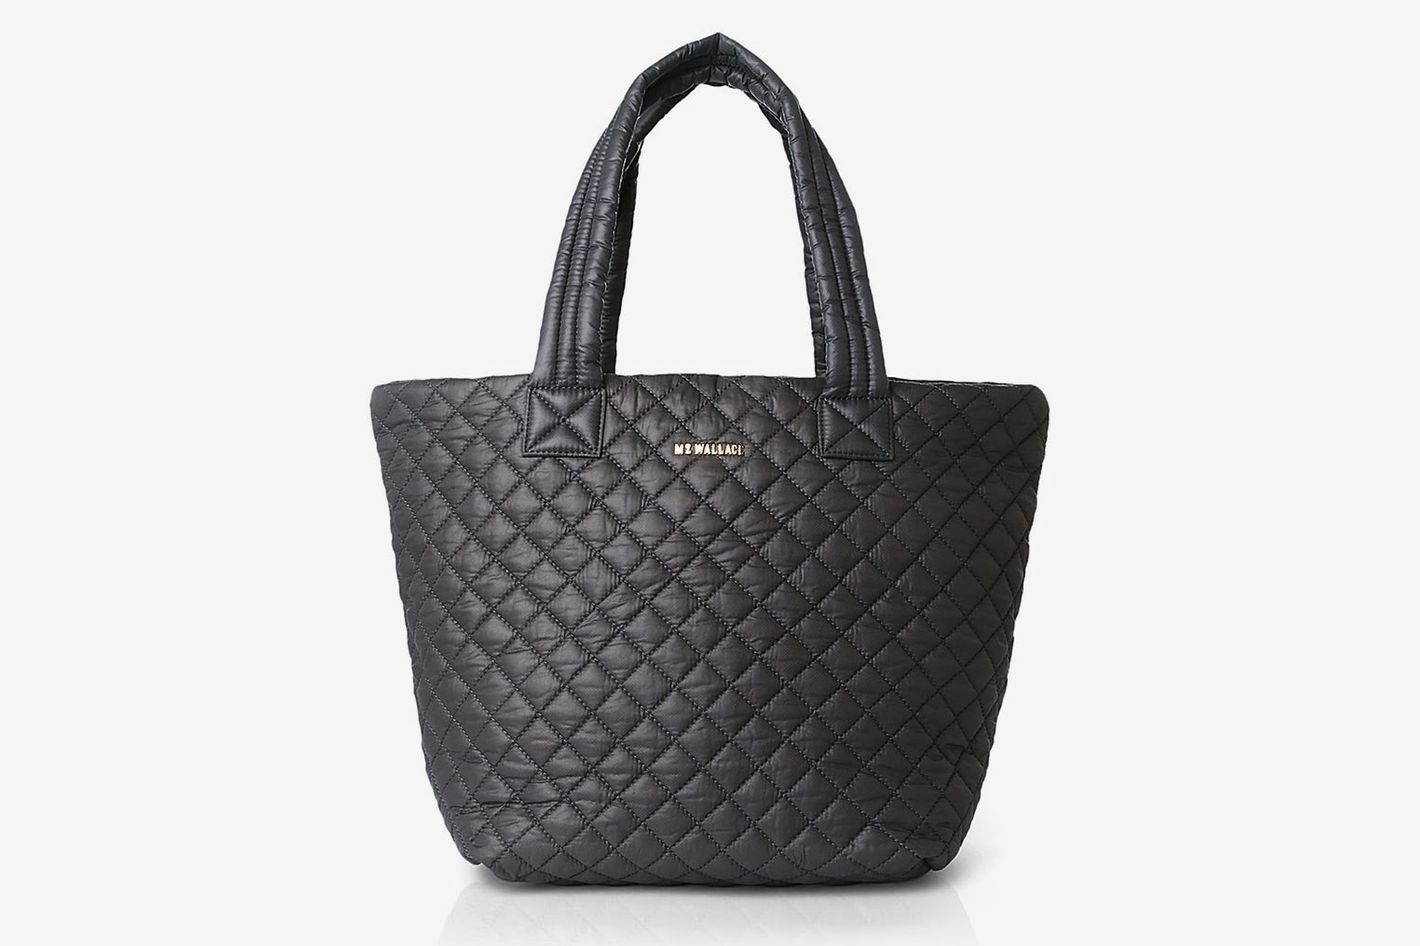 ca6fefc615ca MZ Wallace Medium Metro Tote at Bloomingdales. Buy